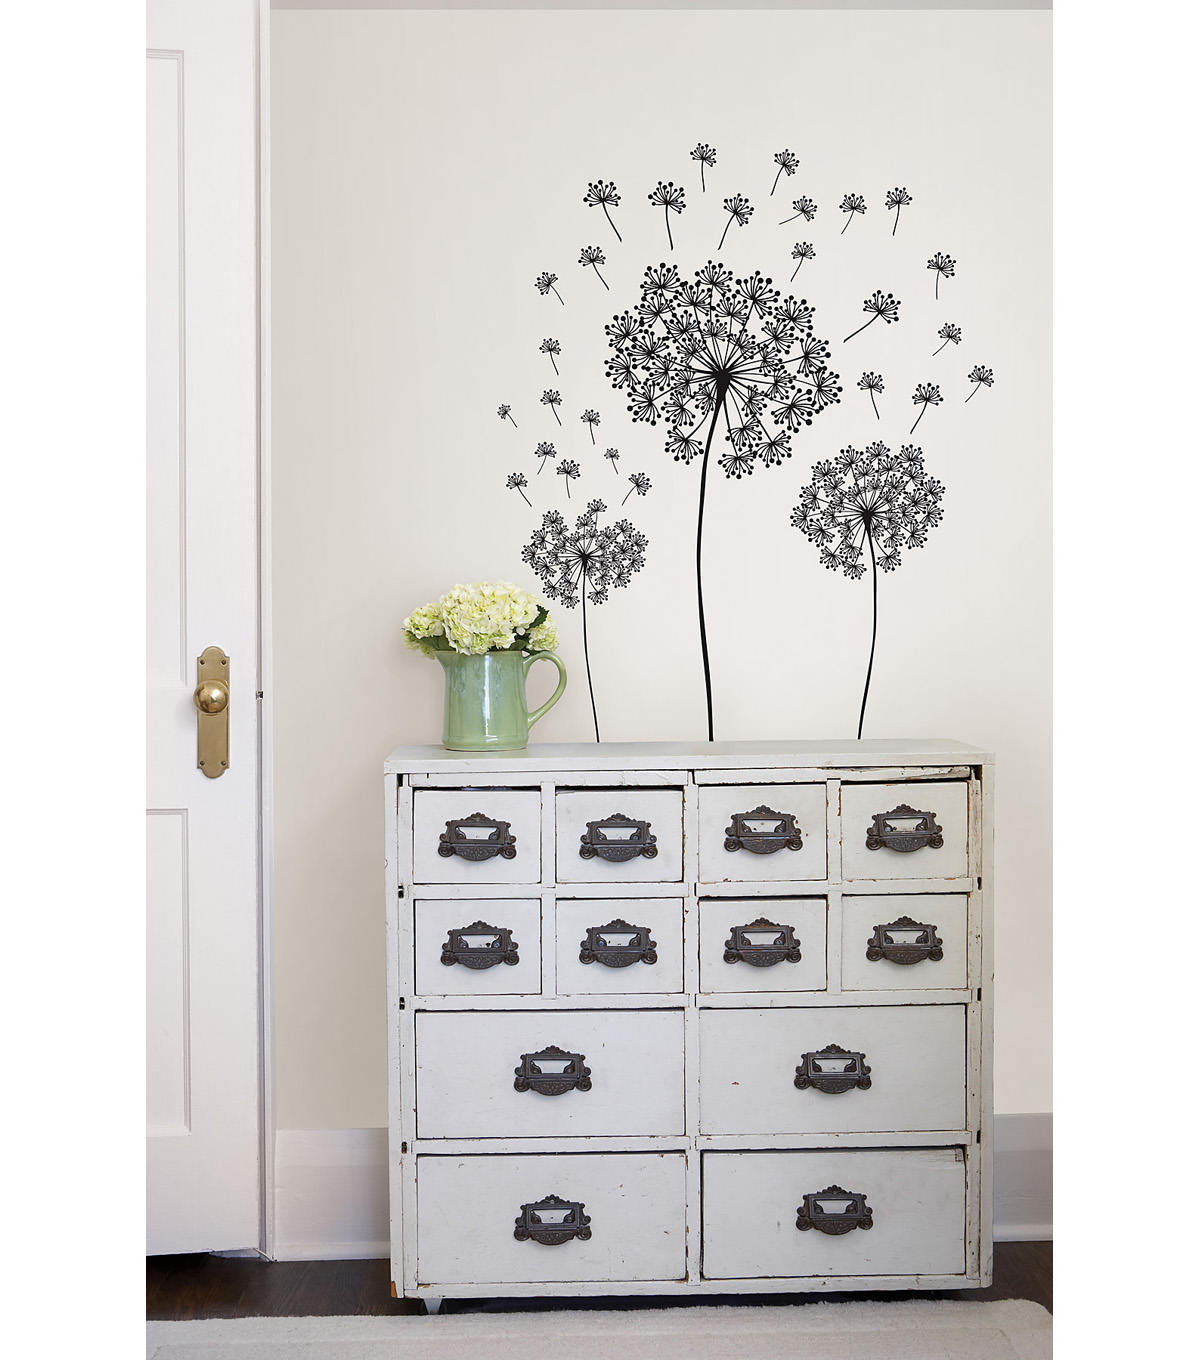 Wall Pops Dandelion Wall Art Decal Kit, 29 Piece Set